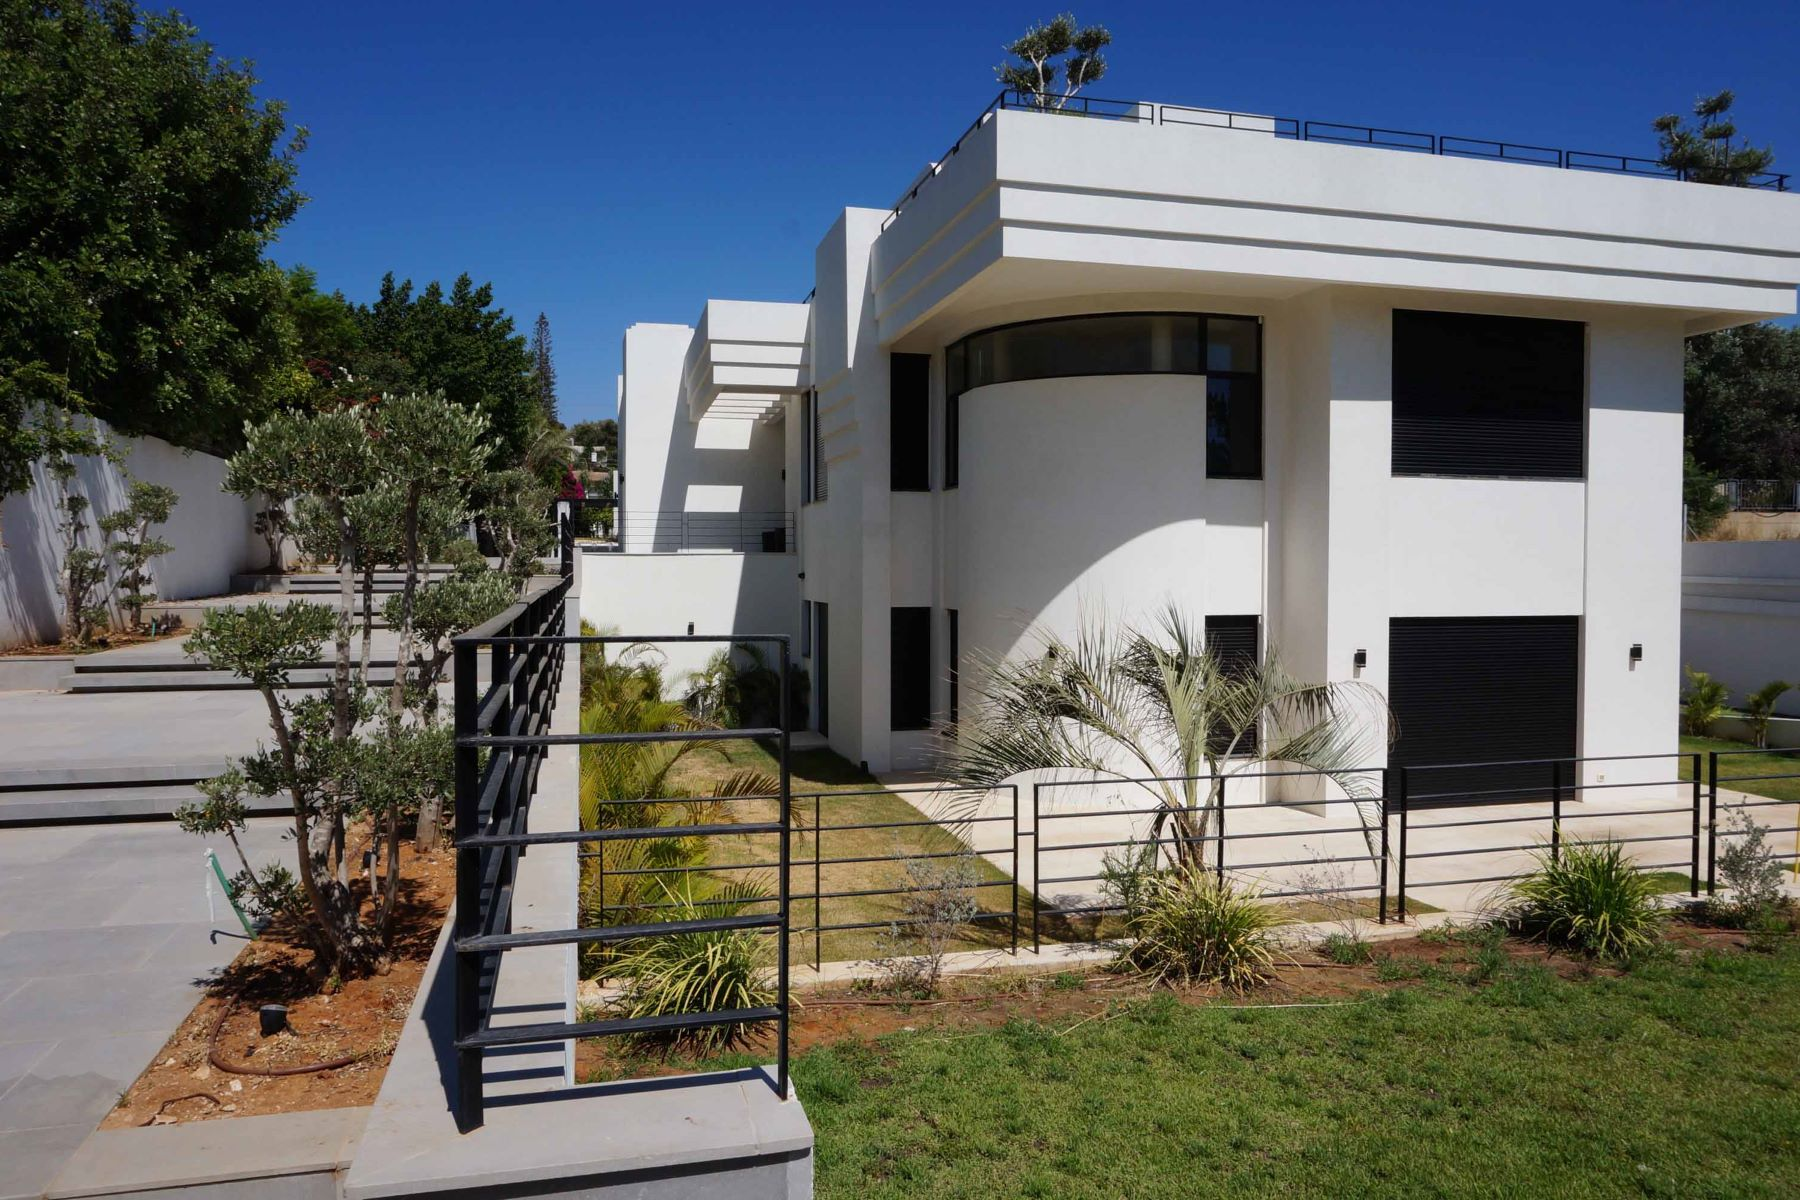 Additional photo for property listing at Exquisite Property in Kfar Shmaryahu Kfar Shmaryahu, Israel Israel